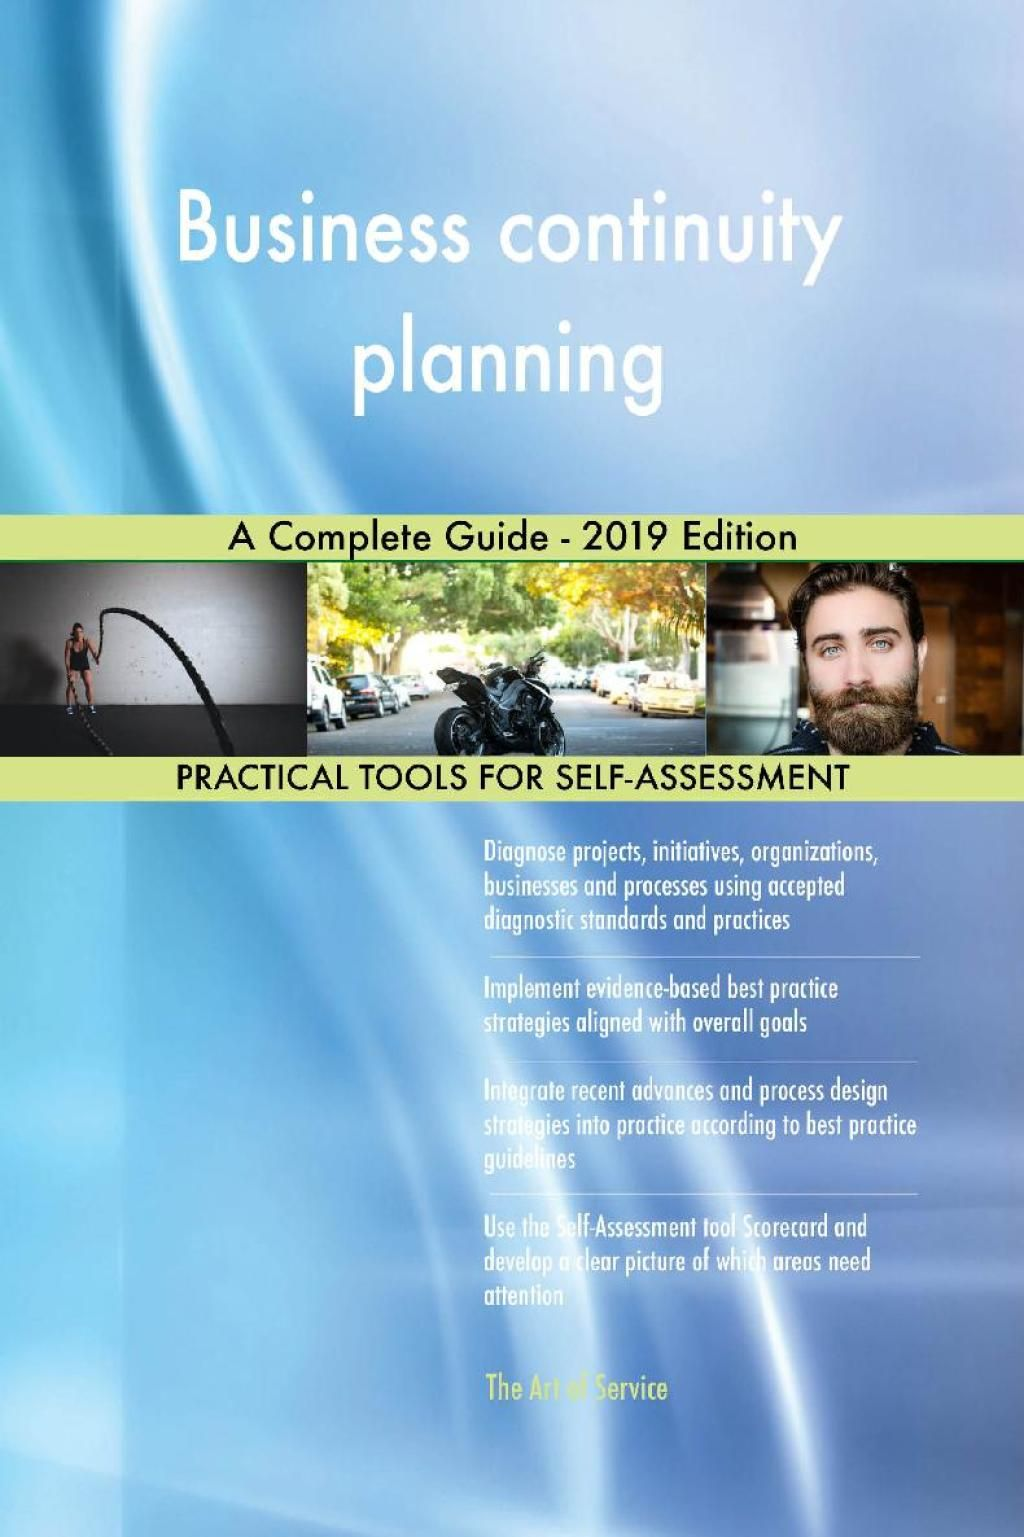 Business continuity planning A Complete Guide 2019